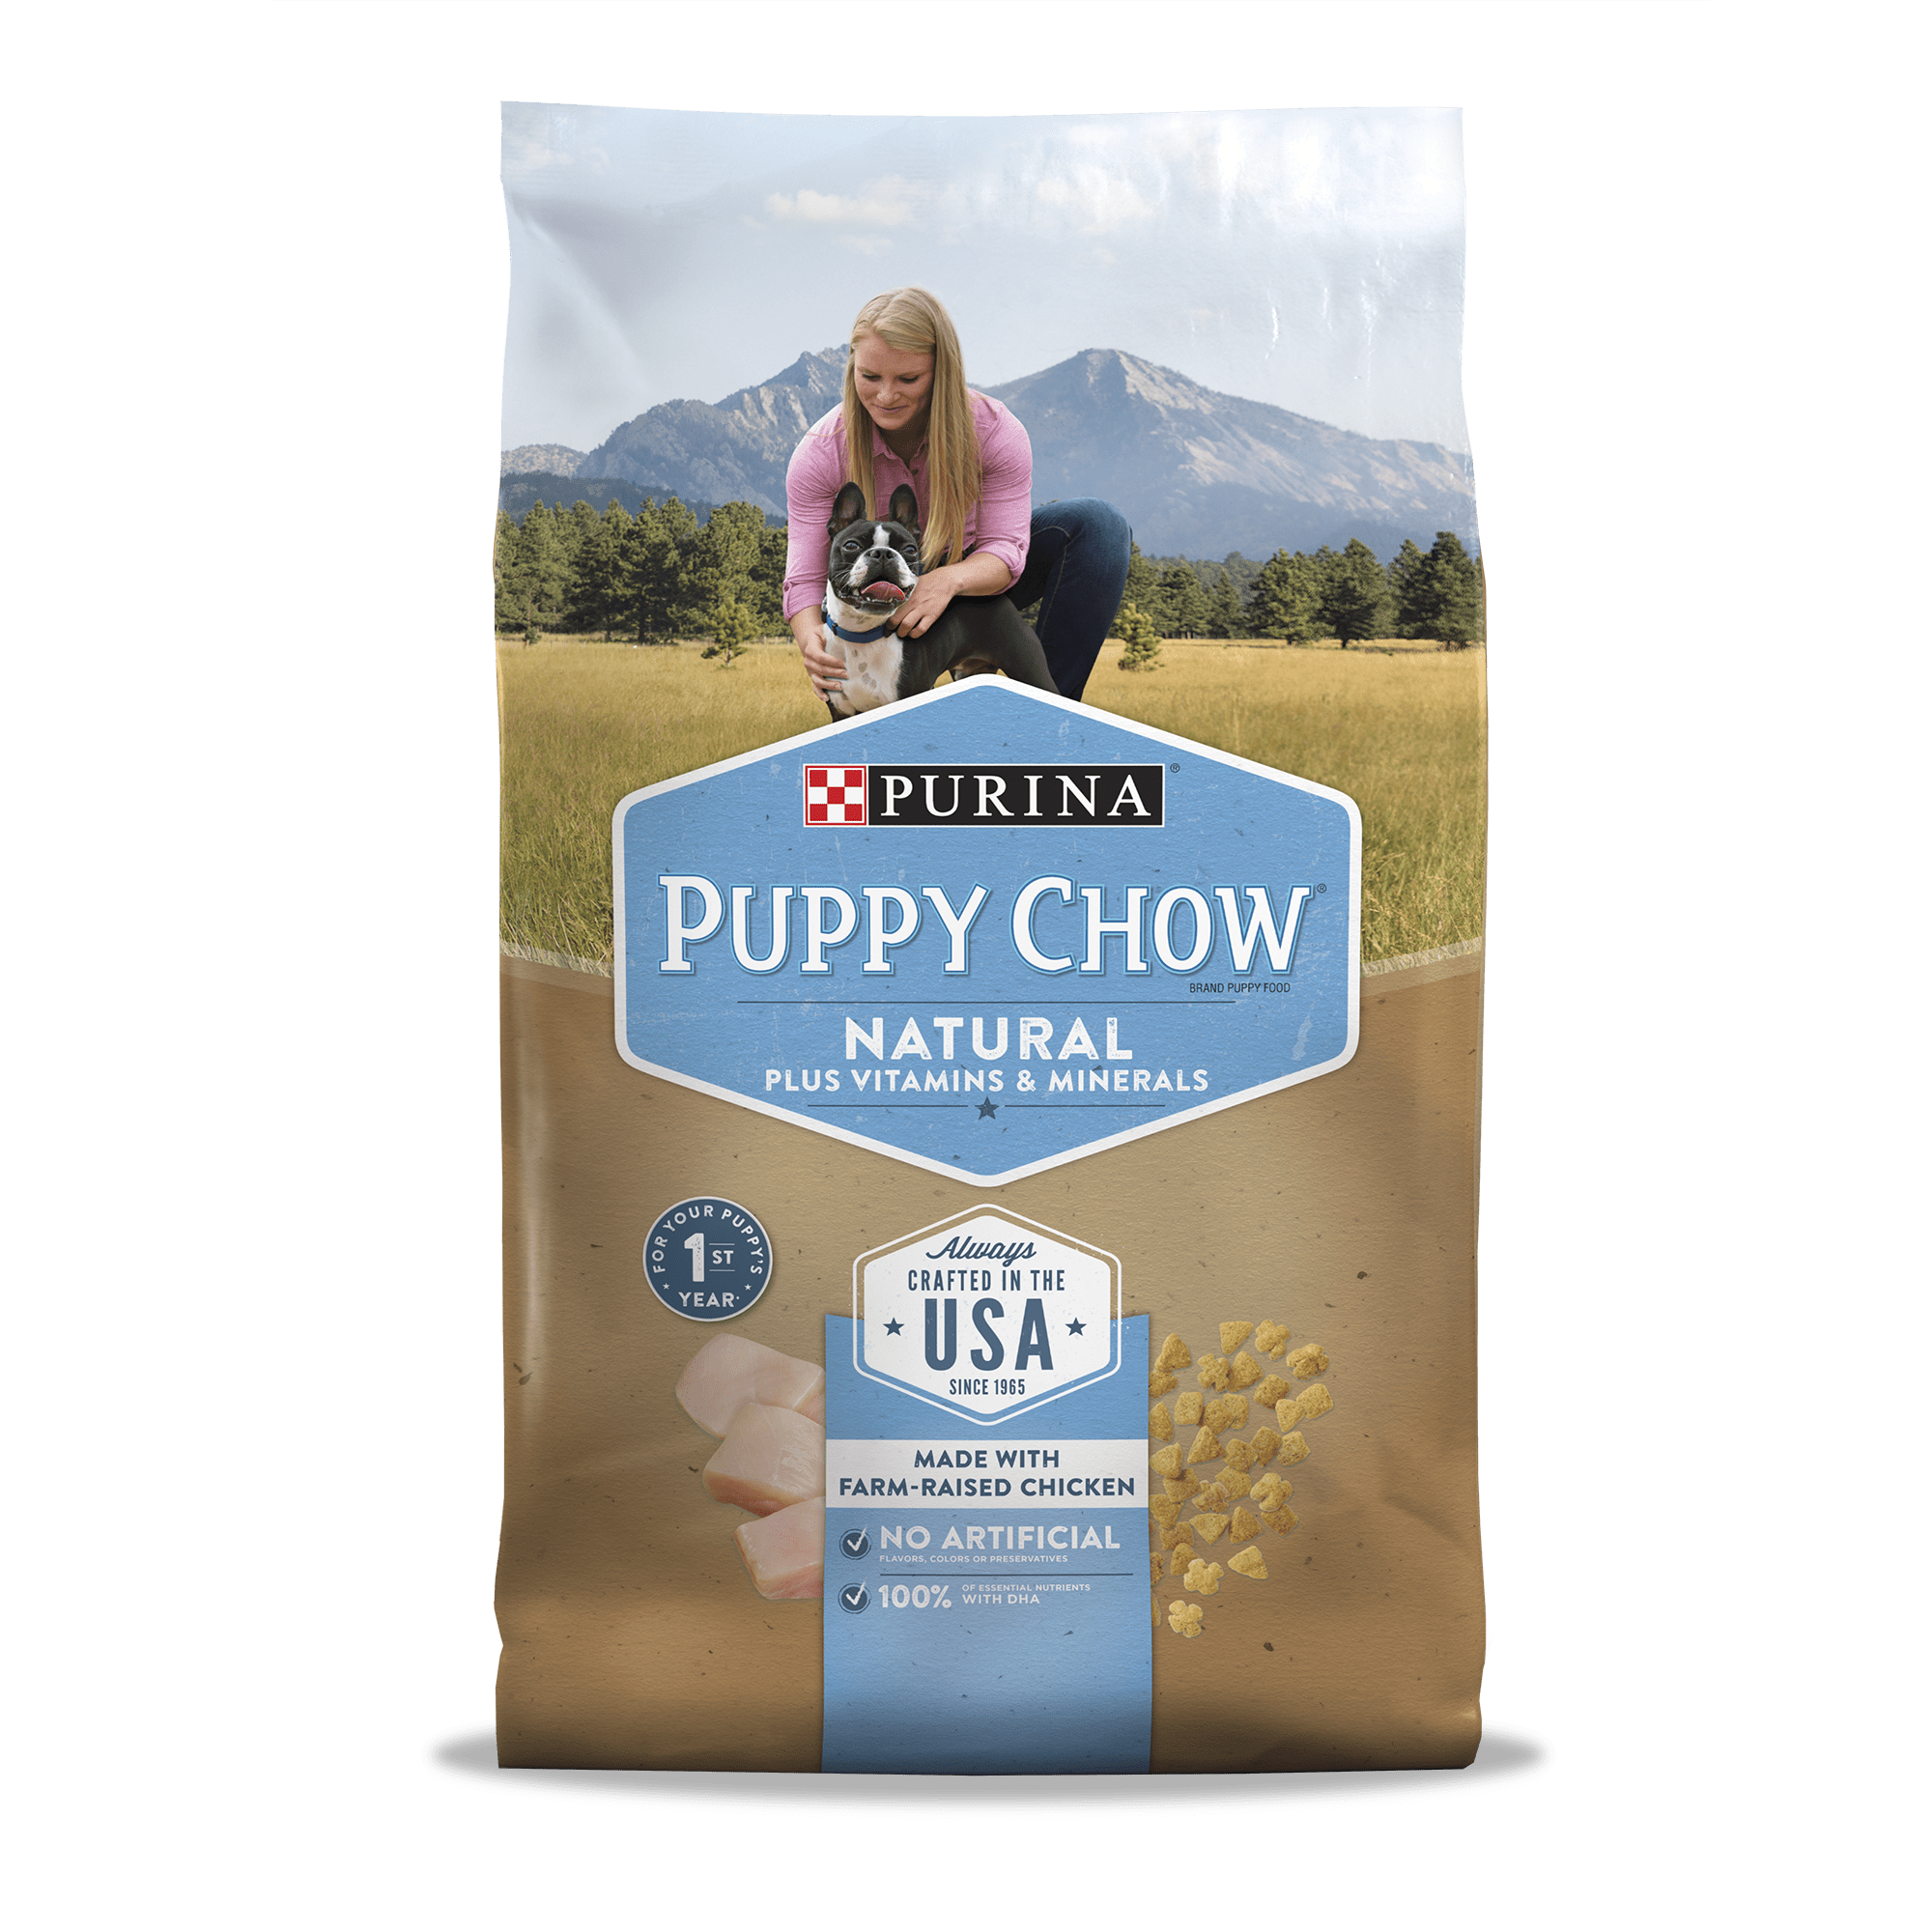 Purina Puppy Chow Natural With Farm-Raised Chicken Dry Puppy Food 15.5 lb. Bag by Nestle Purina Petcare Company